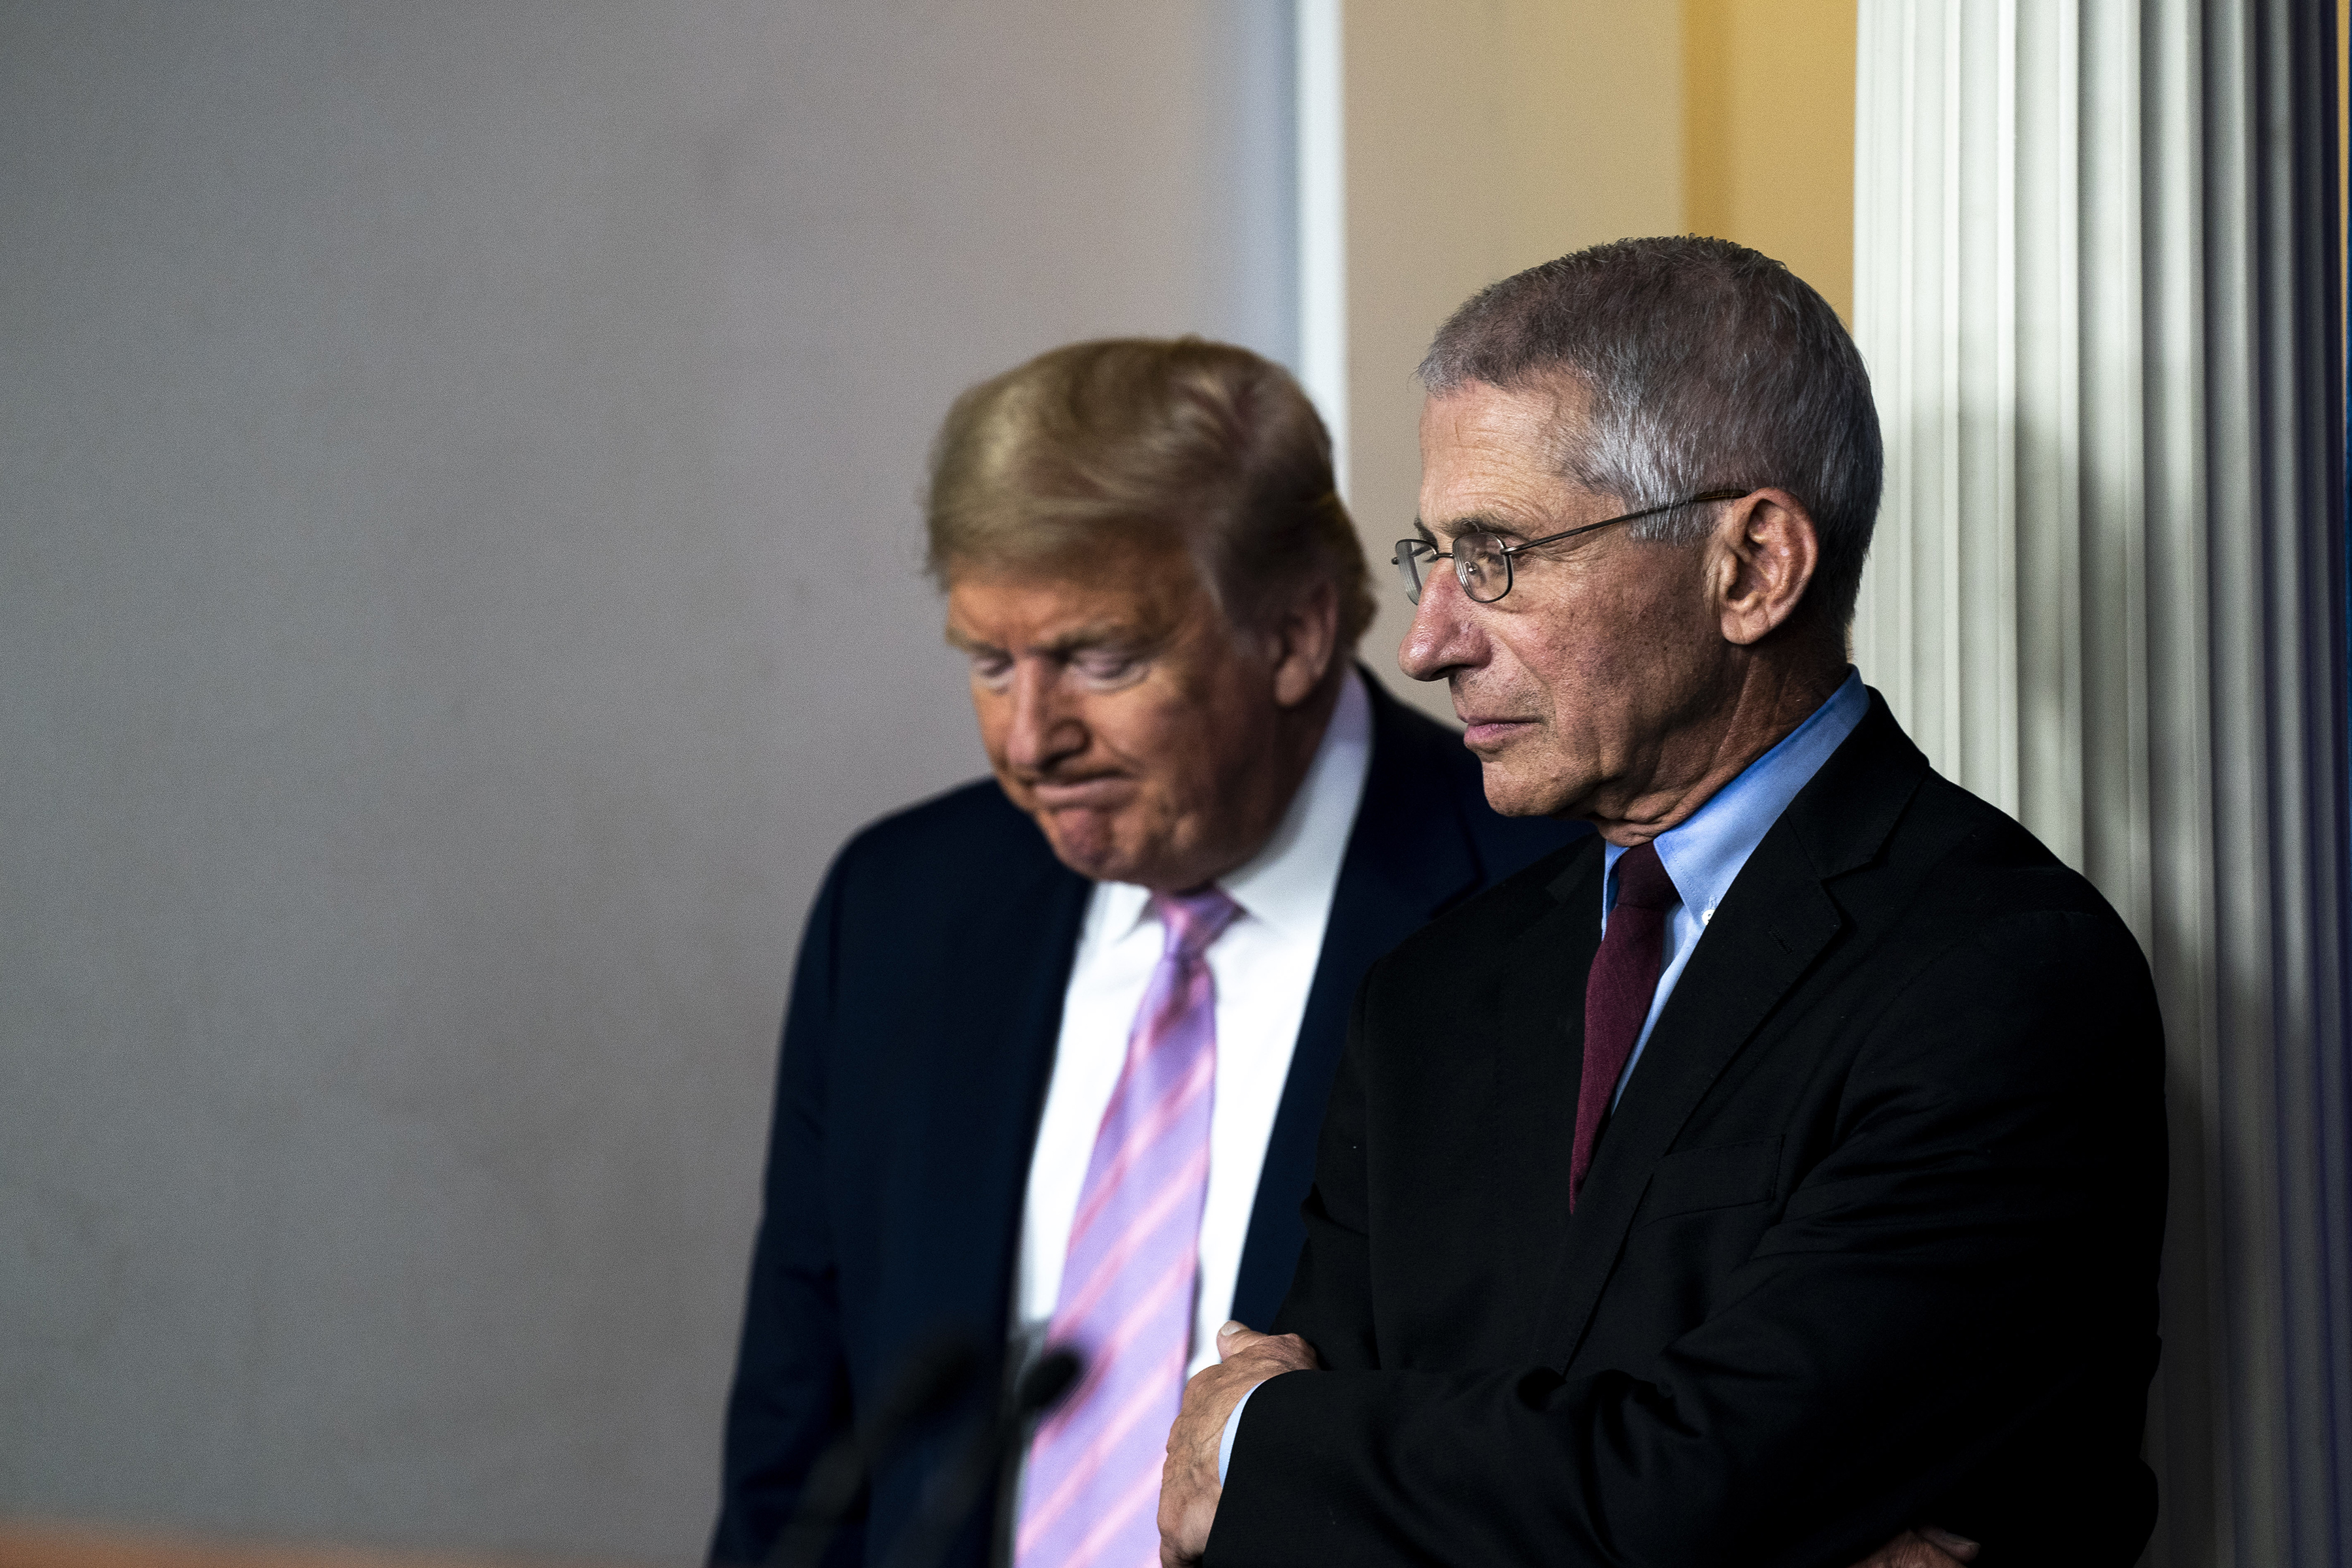 Trump Lashes Out at Fauci Amid Criticism of Slow Virus Response